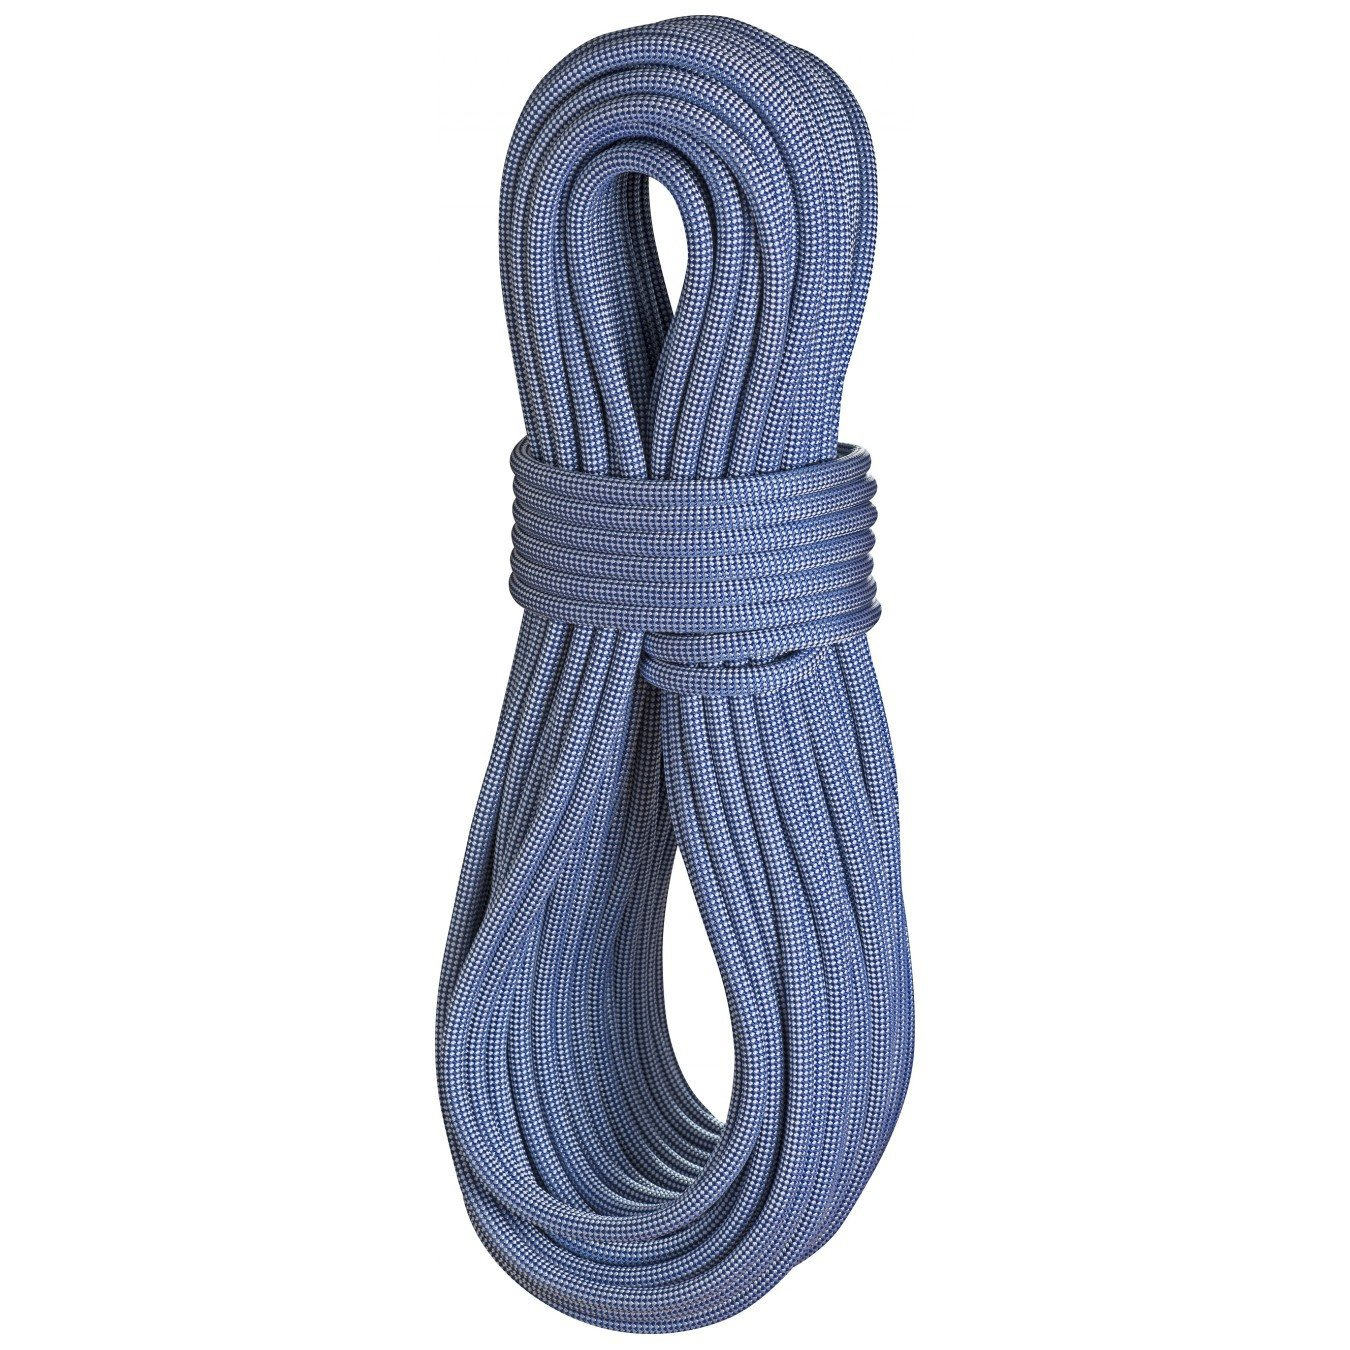 Edelrid Eagle Lite 9.5mm x 60m (Polar) climbing rope, shown in blue colour